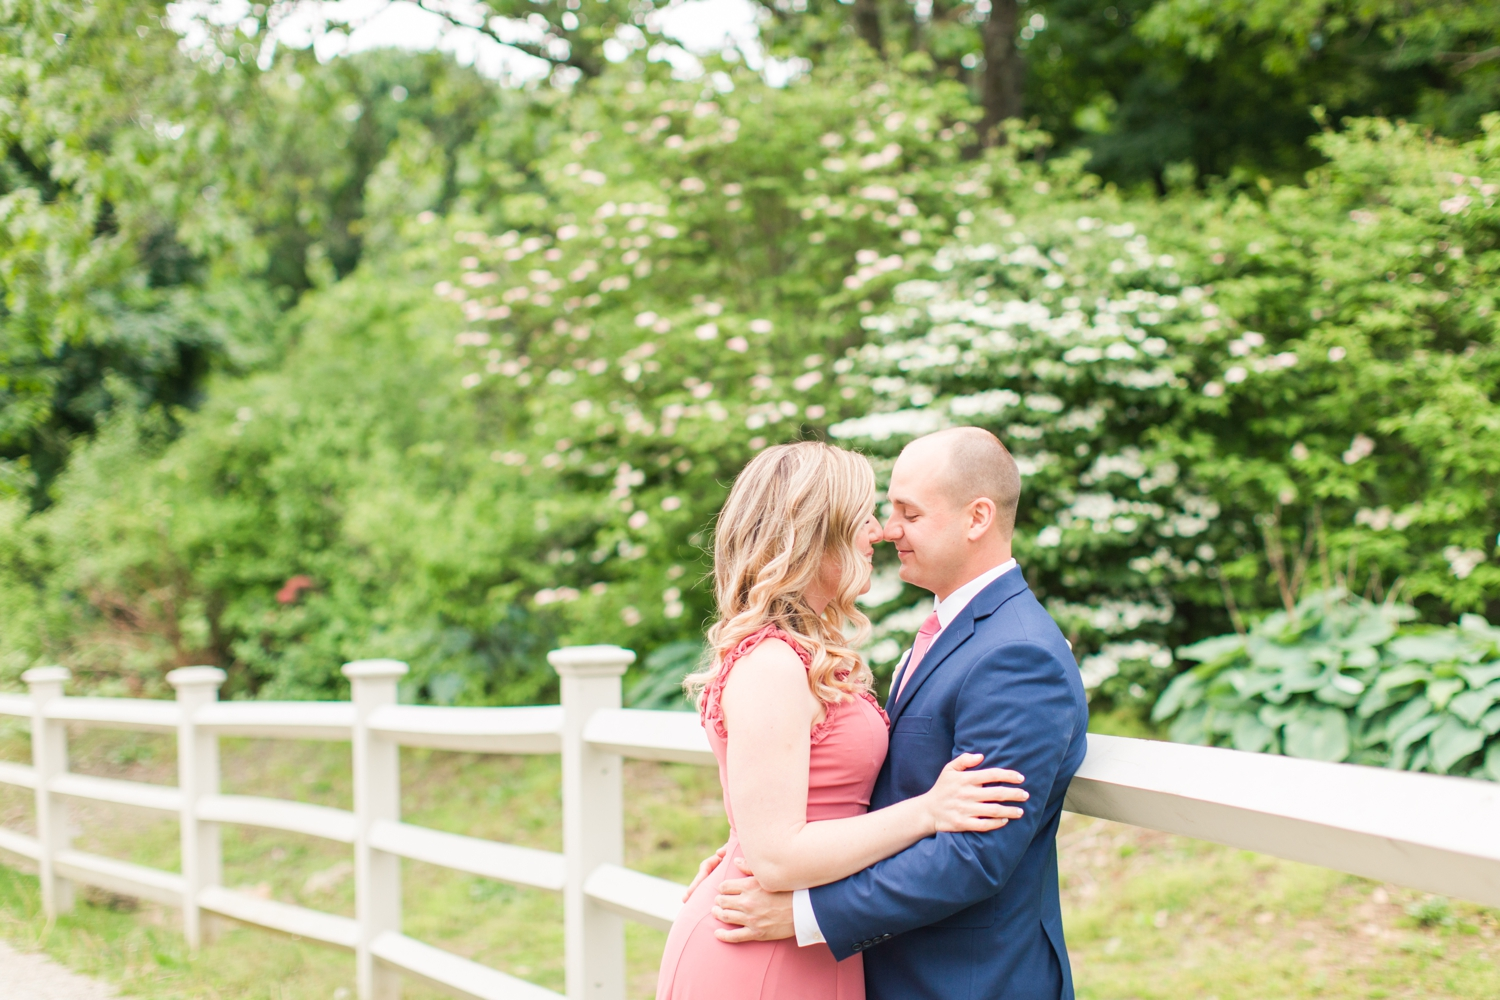 gallaher-mansion-cranbury-park-engagement-session-norwalk-connecticut-wedding-photographer-shaina-lee-photography-photo-9.jpg